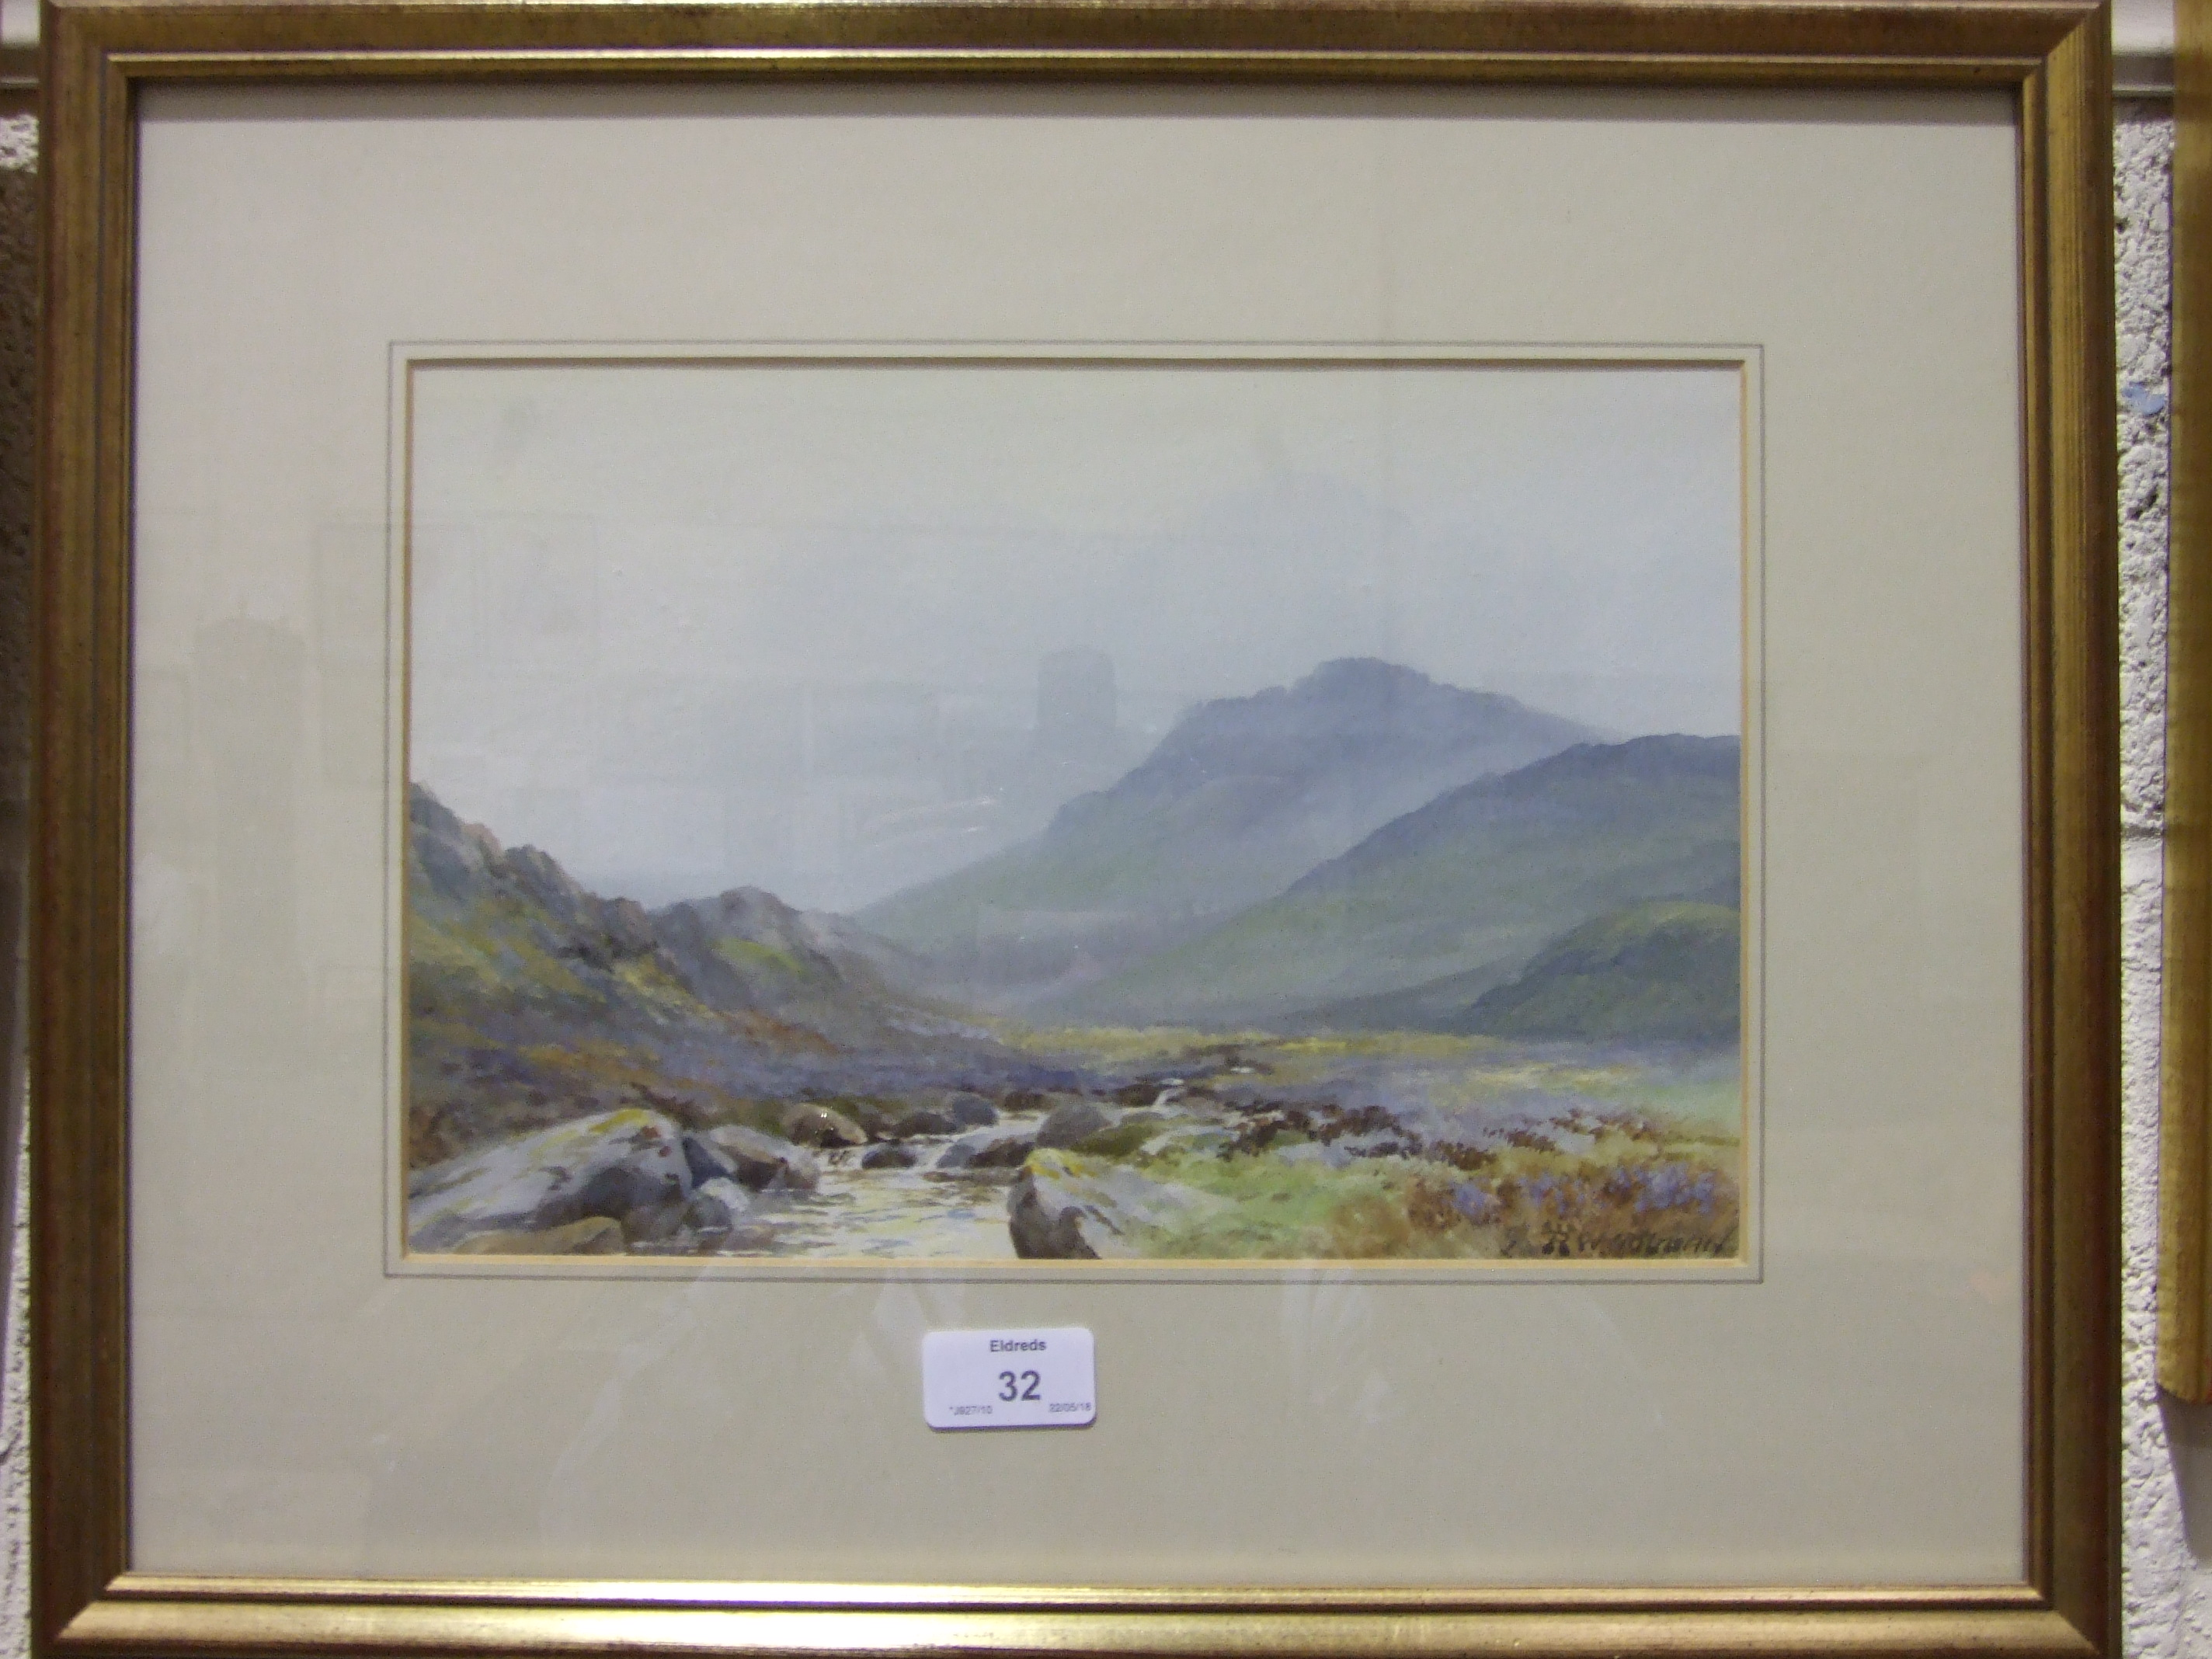 R W Holman TAVY-CLEAVE, DARTMOOR Signed watercolour, 20 x 30cm and another by A Jukes-Browne, - Image 3 of 3